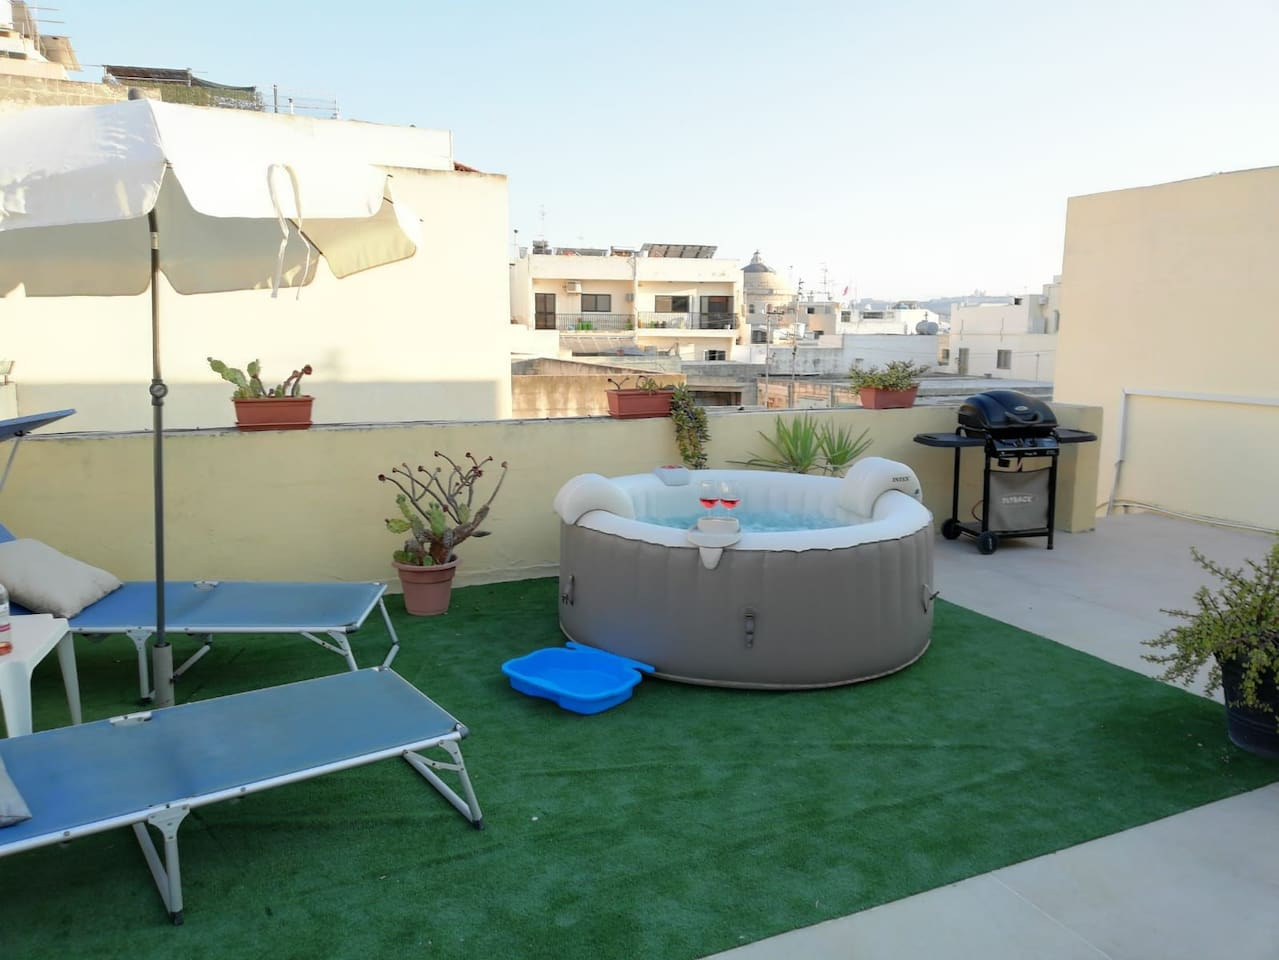 Enjoy the private terrace with Mosta Badilica dome views and a Jacuzzi  where to relax or sip a glass of wine.